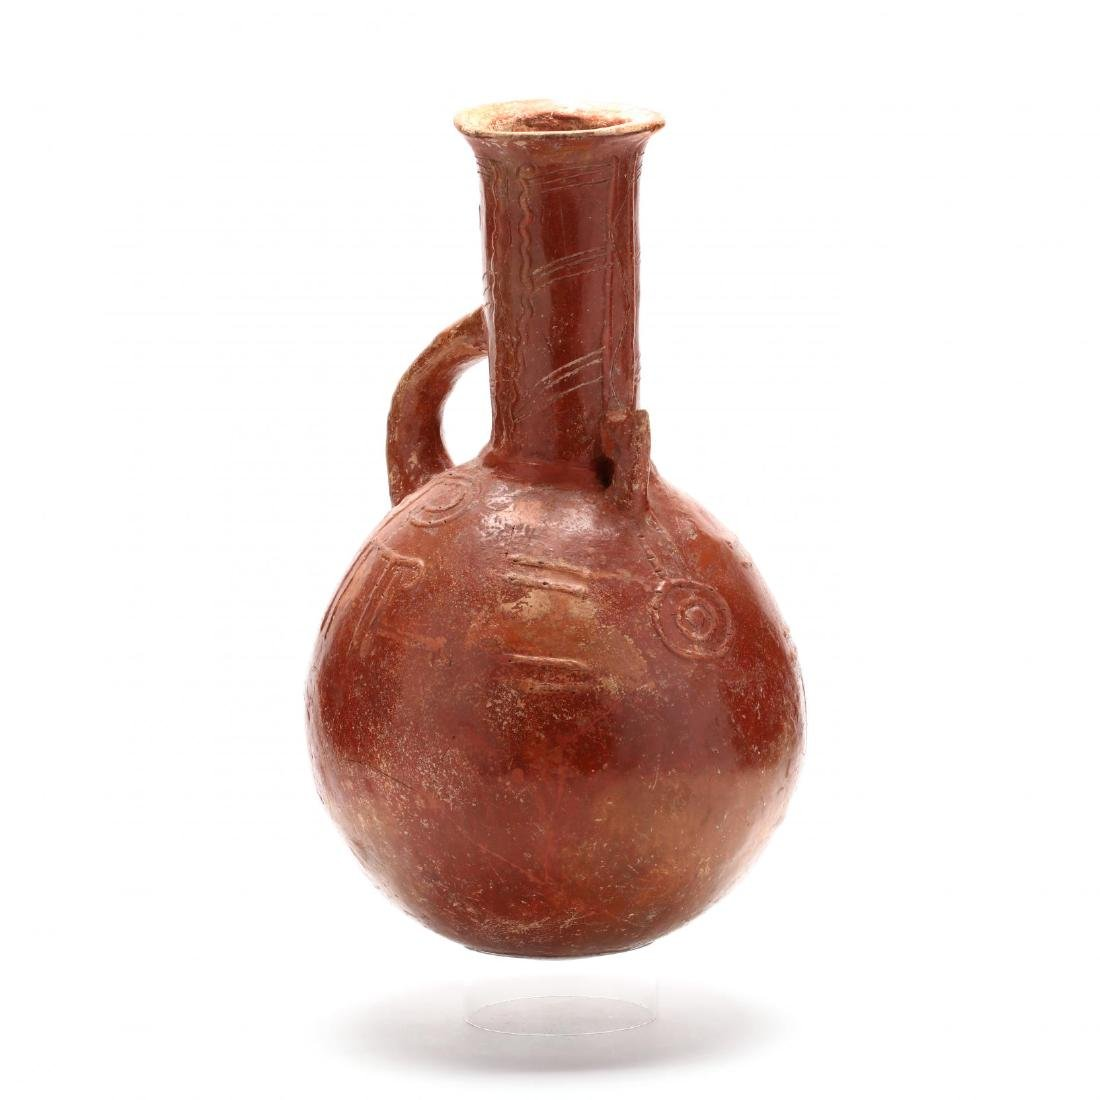 Cypriot Early Bronze Age Polished Red Ware Pitcher